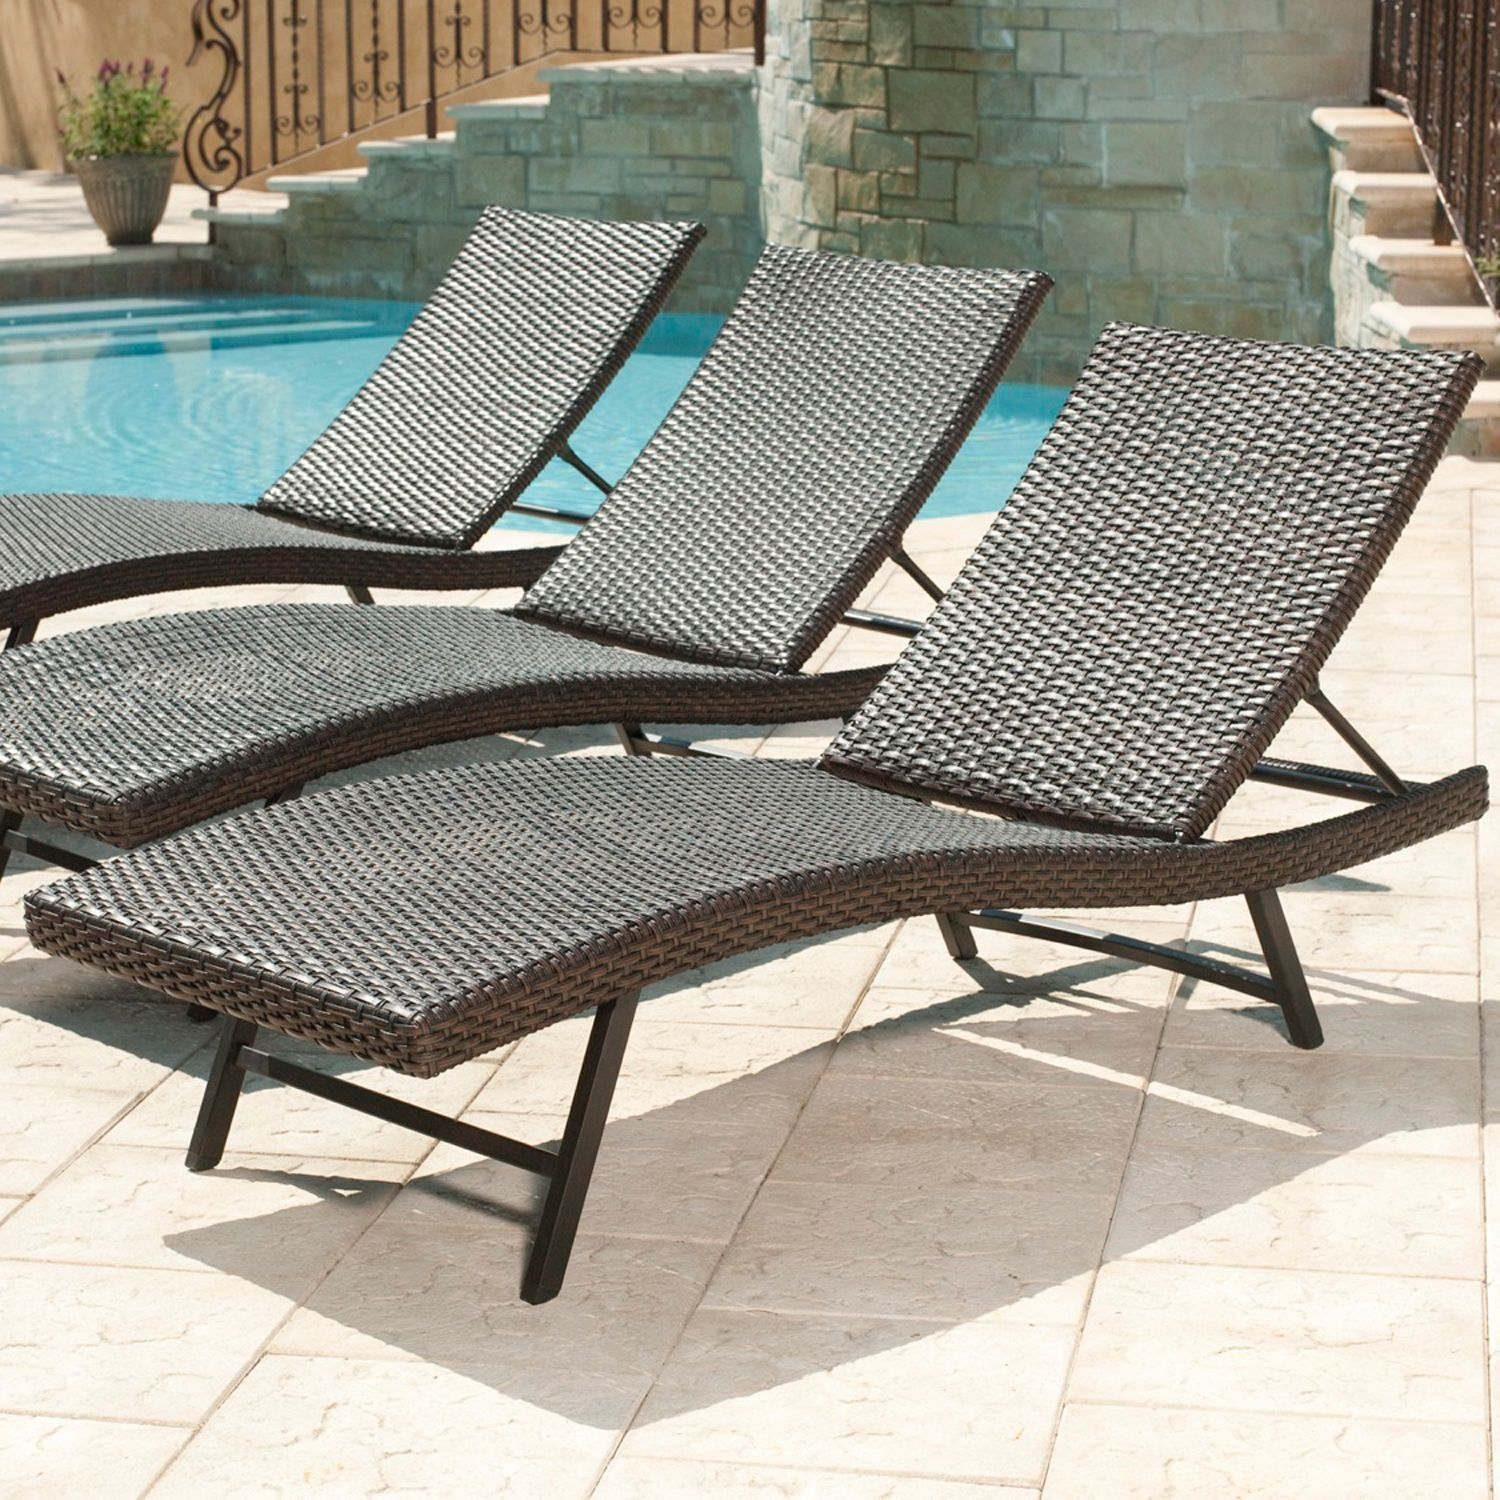 Member S Mark Agio Heritage Chaise Lounge Chair Sam S Club Lounge Chair Outdoor Pool Chaise Lounge Pool Chaise